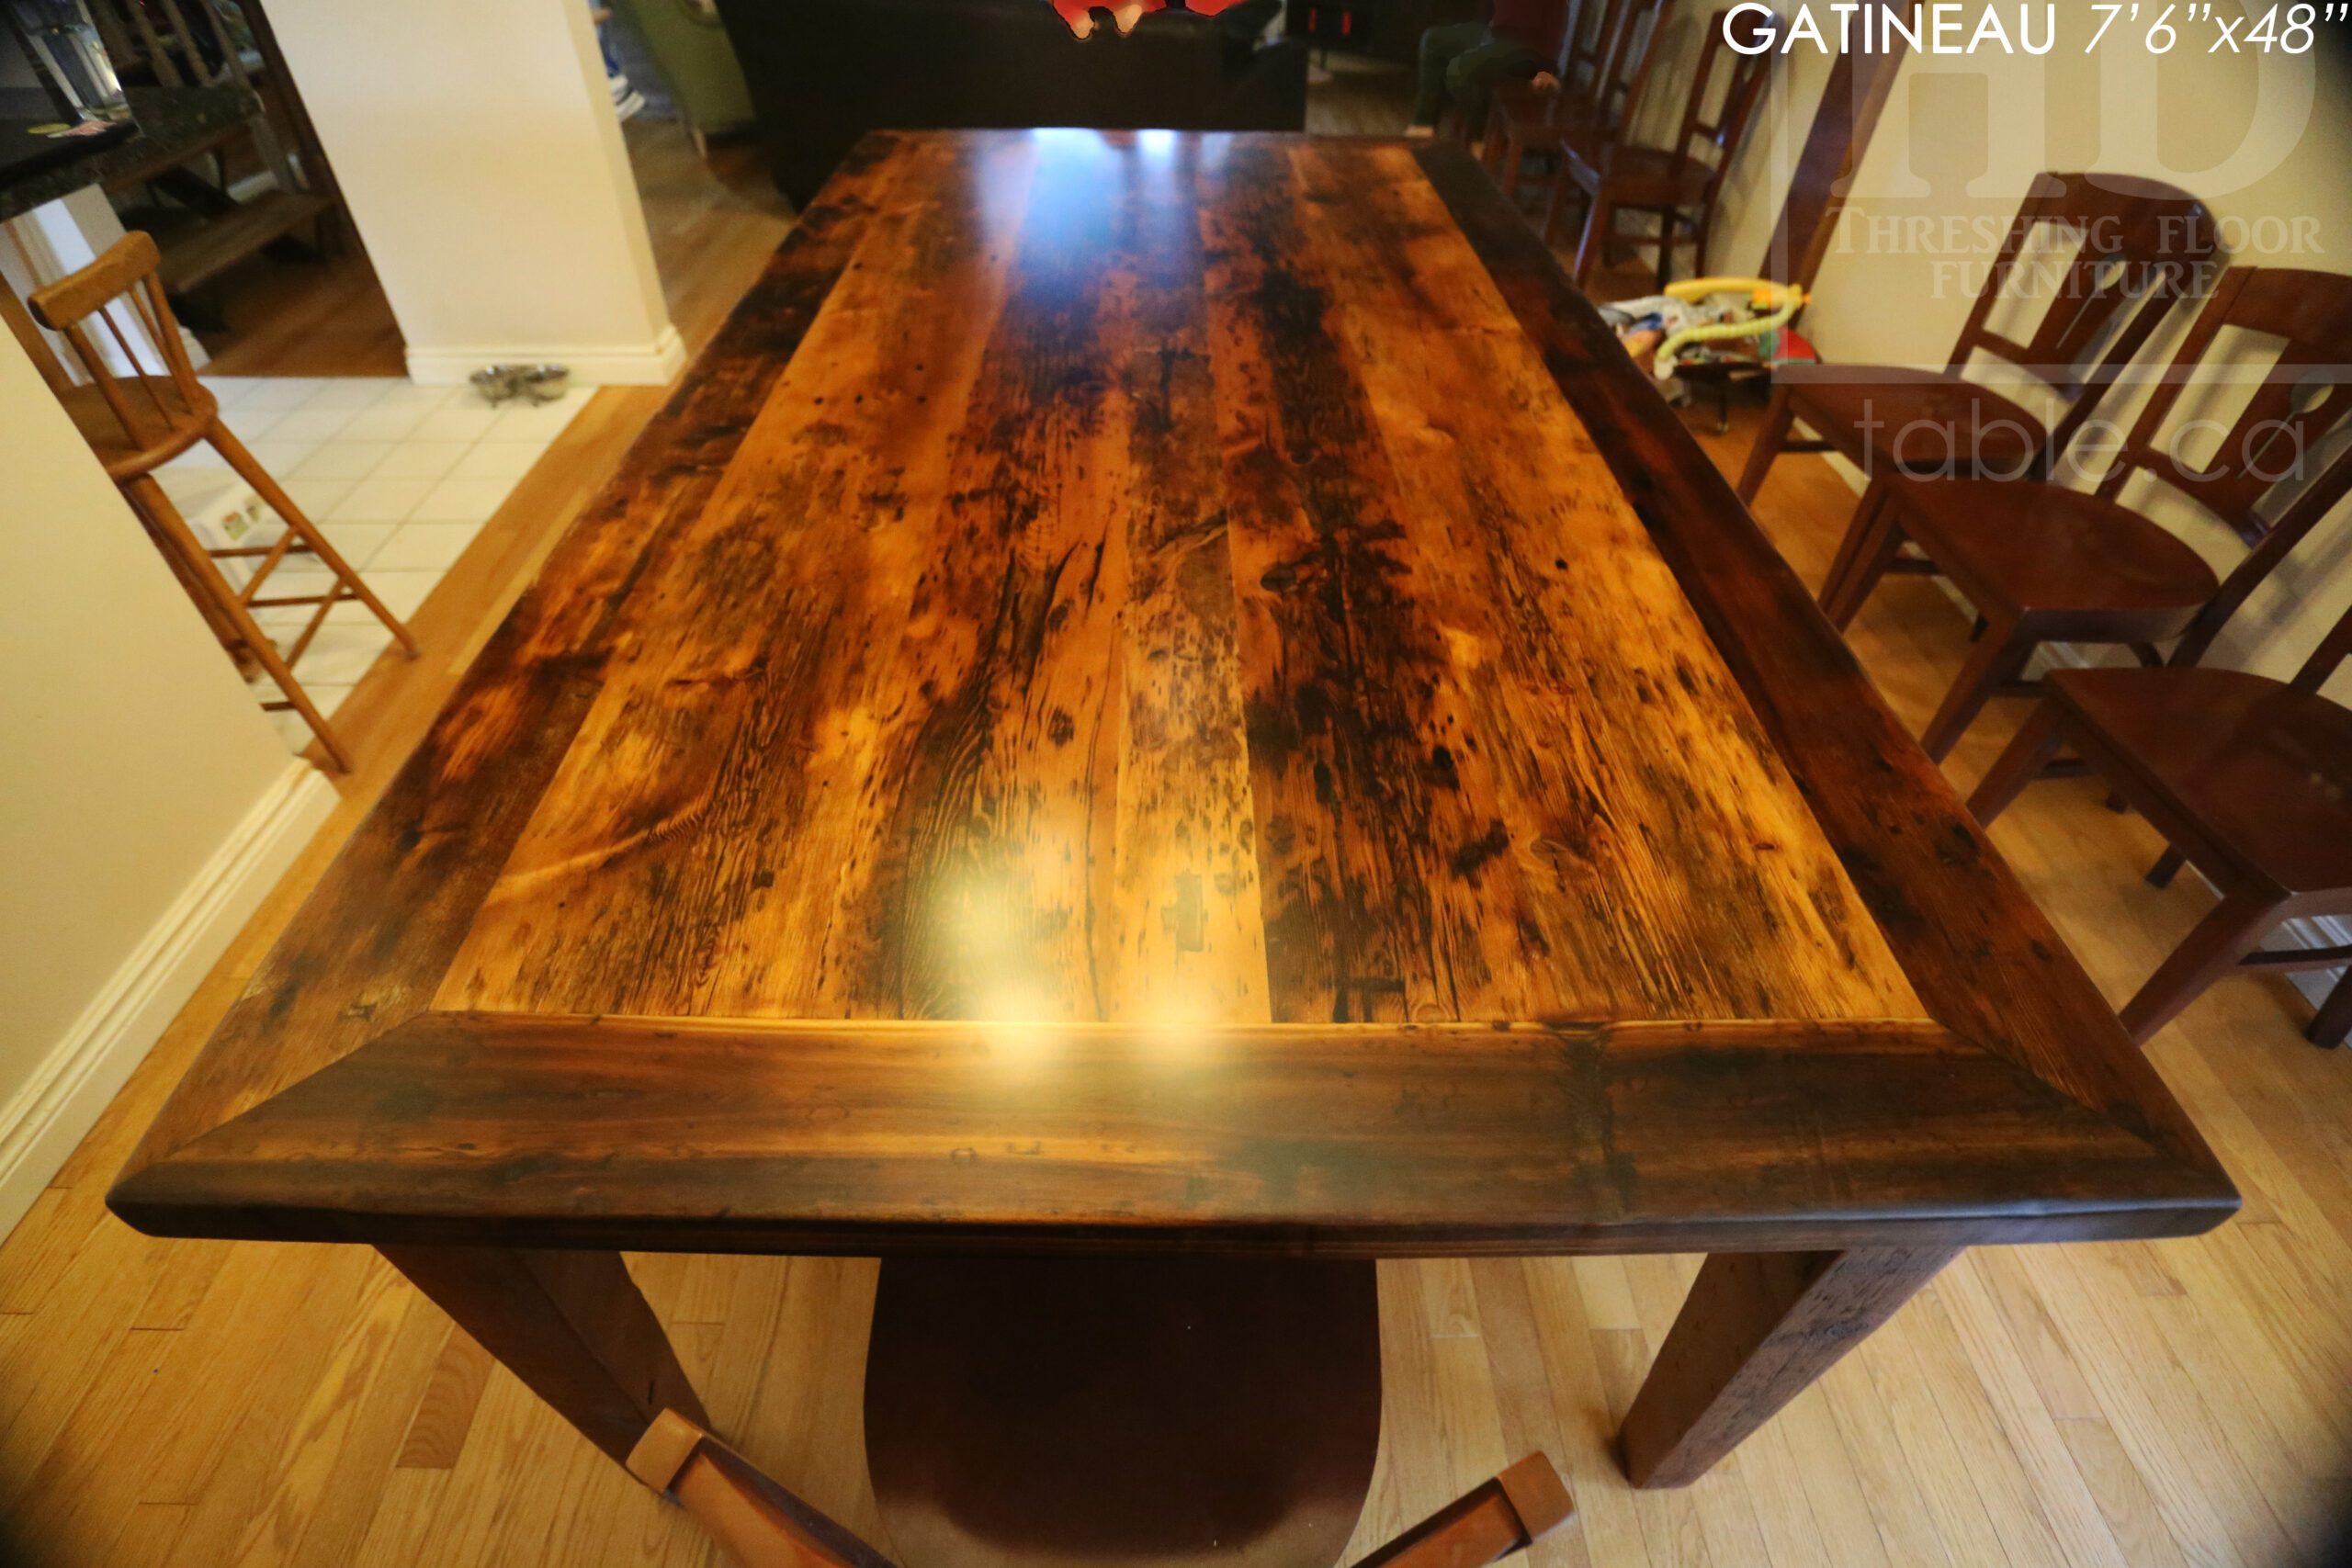 """7' 6"""" Reclaimed Wood Harvest Table we made for a Gatineau, Quebec home - 48"""" wide - Tapered with a Notch Windbrace Beam Legs - Hemlock Ontario Barnwood Threshing Floor 2"""" Top - Original edges & distressing maintained - Premium epoxy + matte polyurethane finish - www.table.ca"""